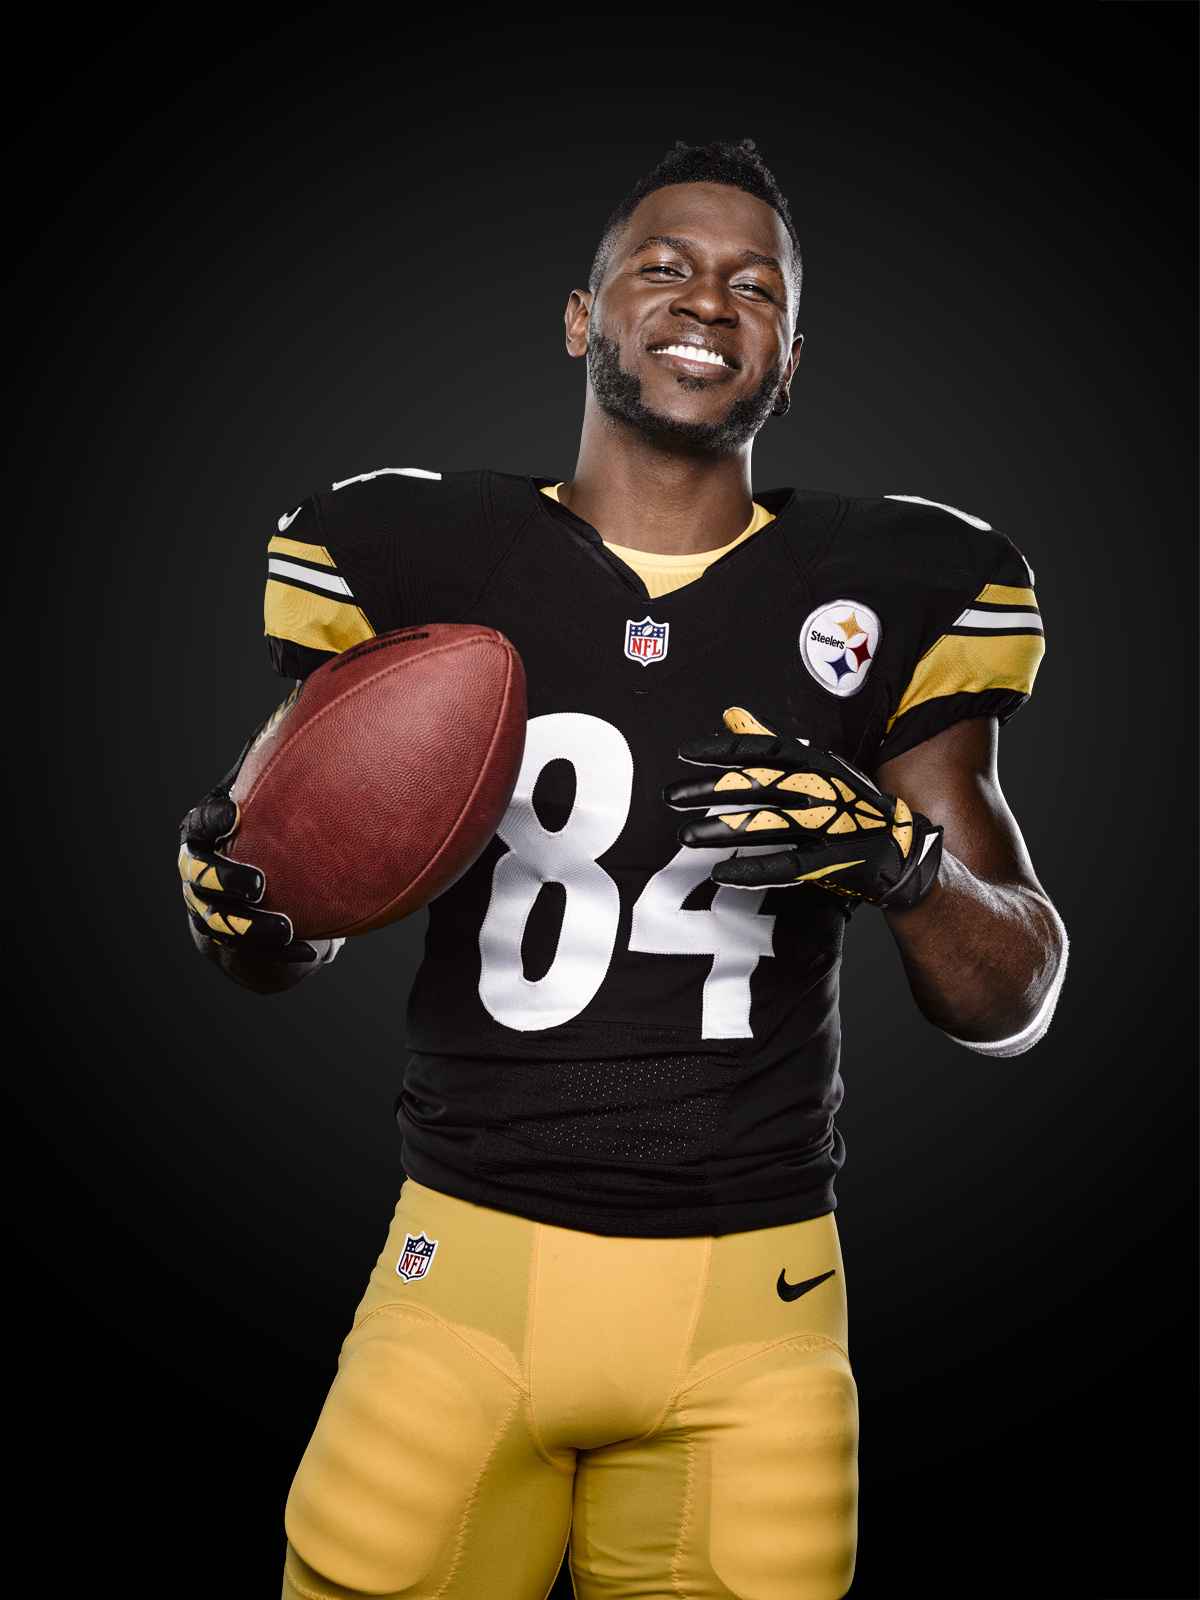 Antonio Brown Ea Sports 3098429 Hd Wallpaper Backgrounds Download